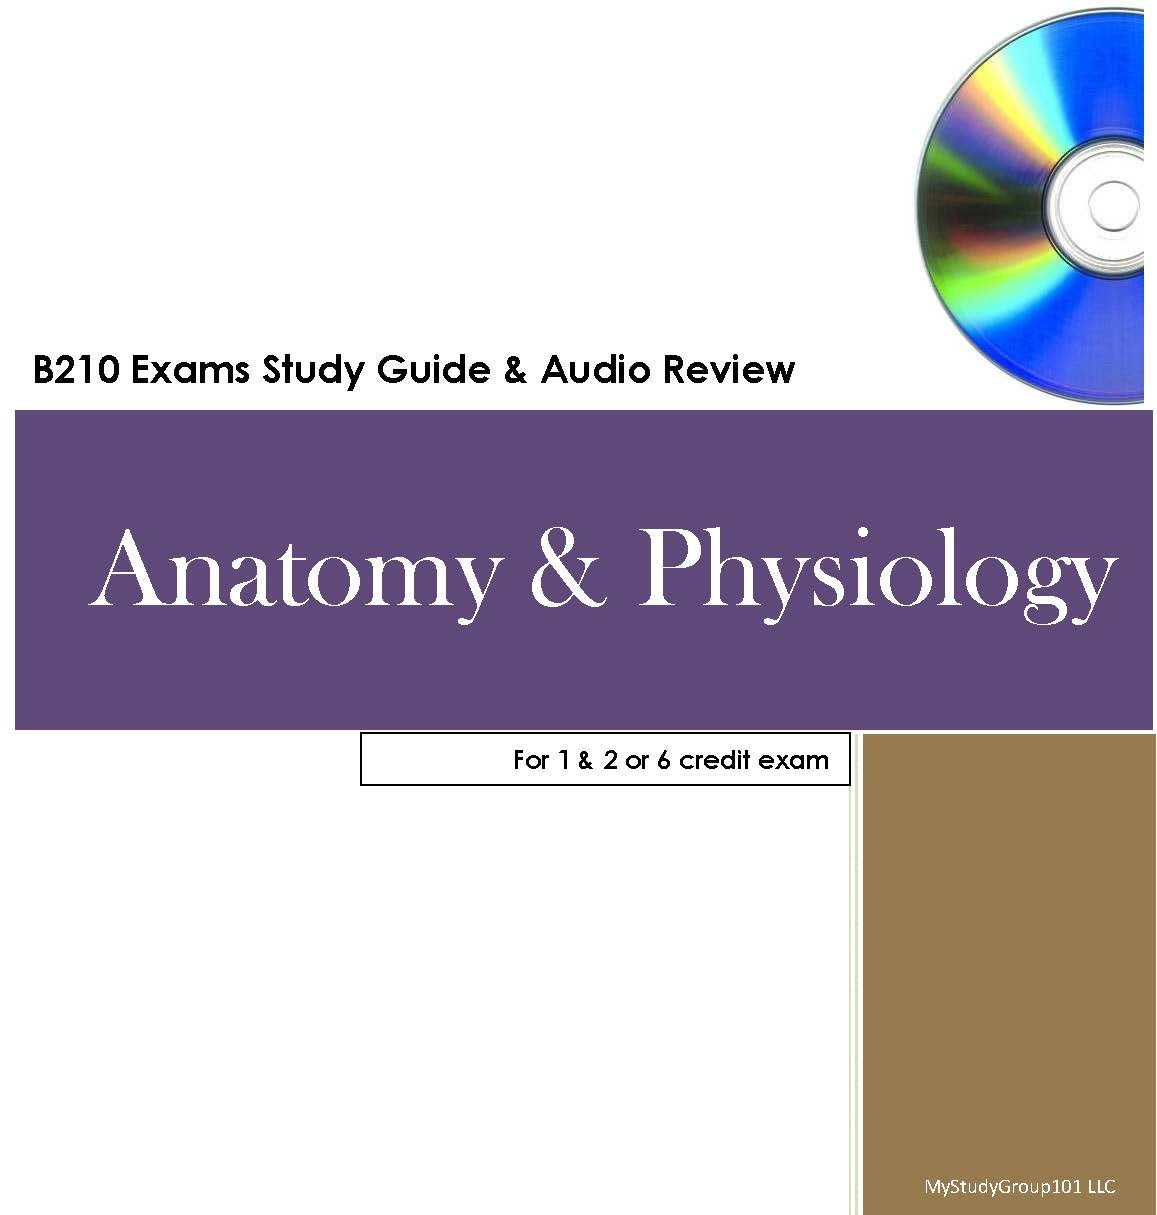 Amazon Mystudygroup101 Anatomy Physiology 12 And 6 Credit